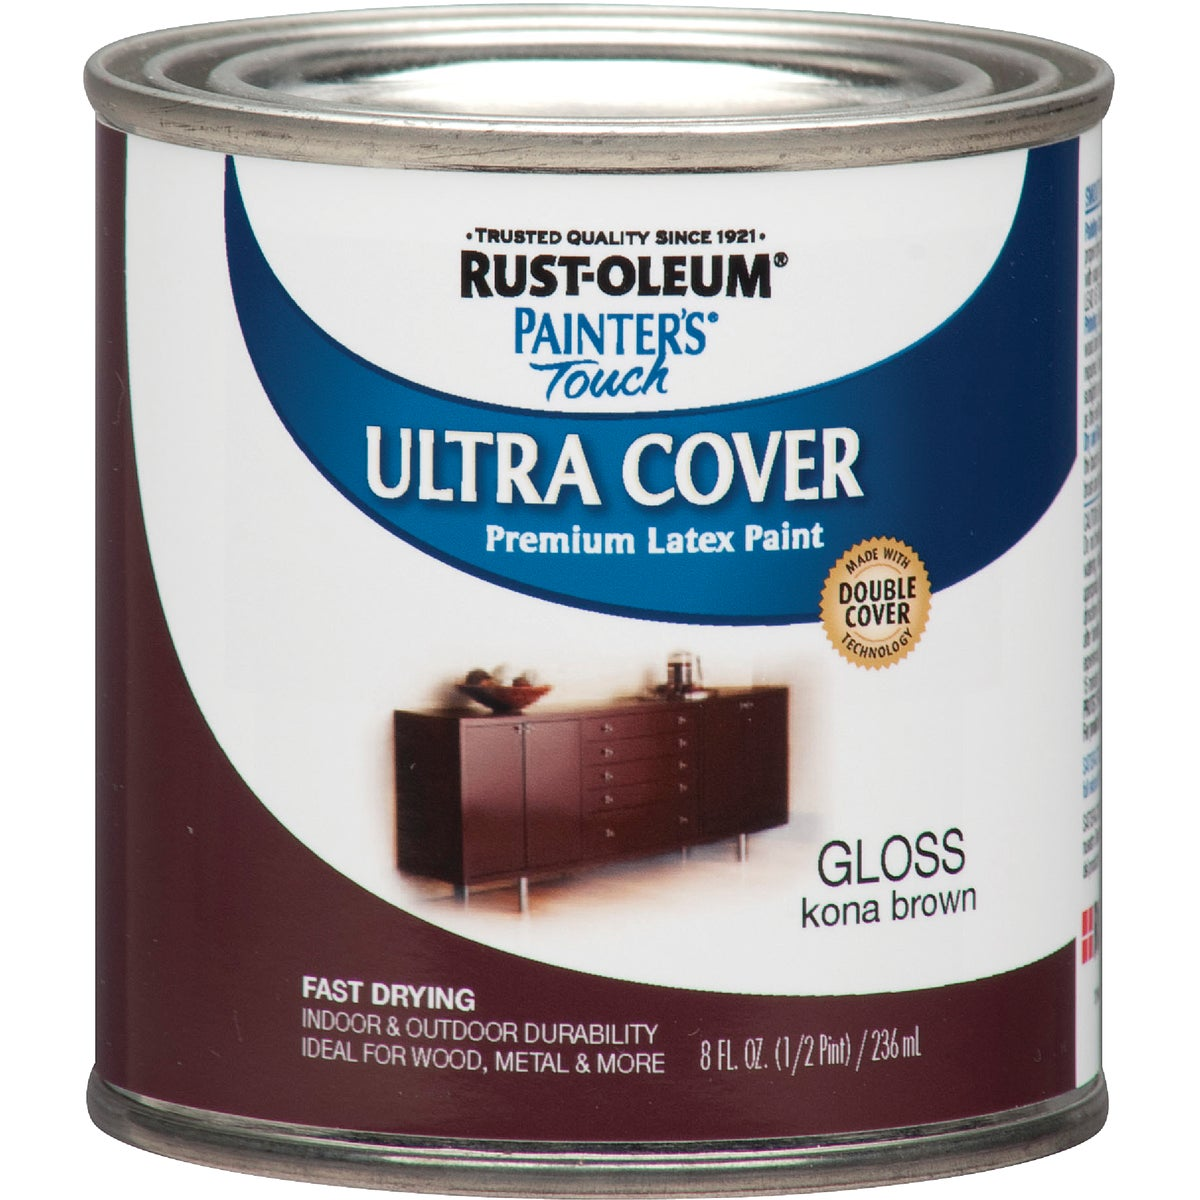 KONA BROWN LATEX PAINT - 1977730 by Rustoleum